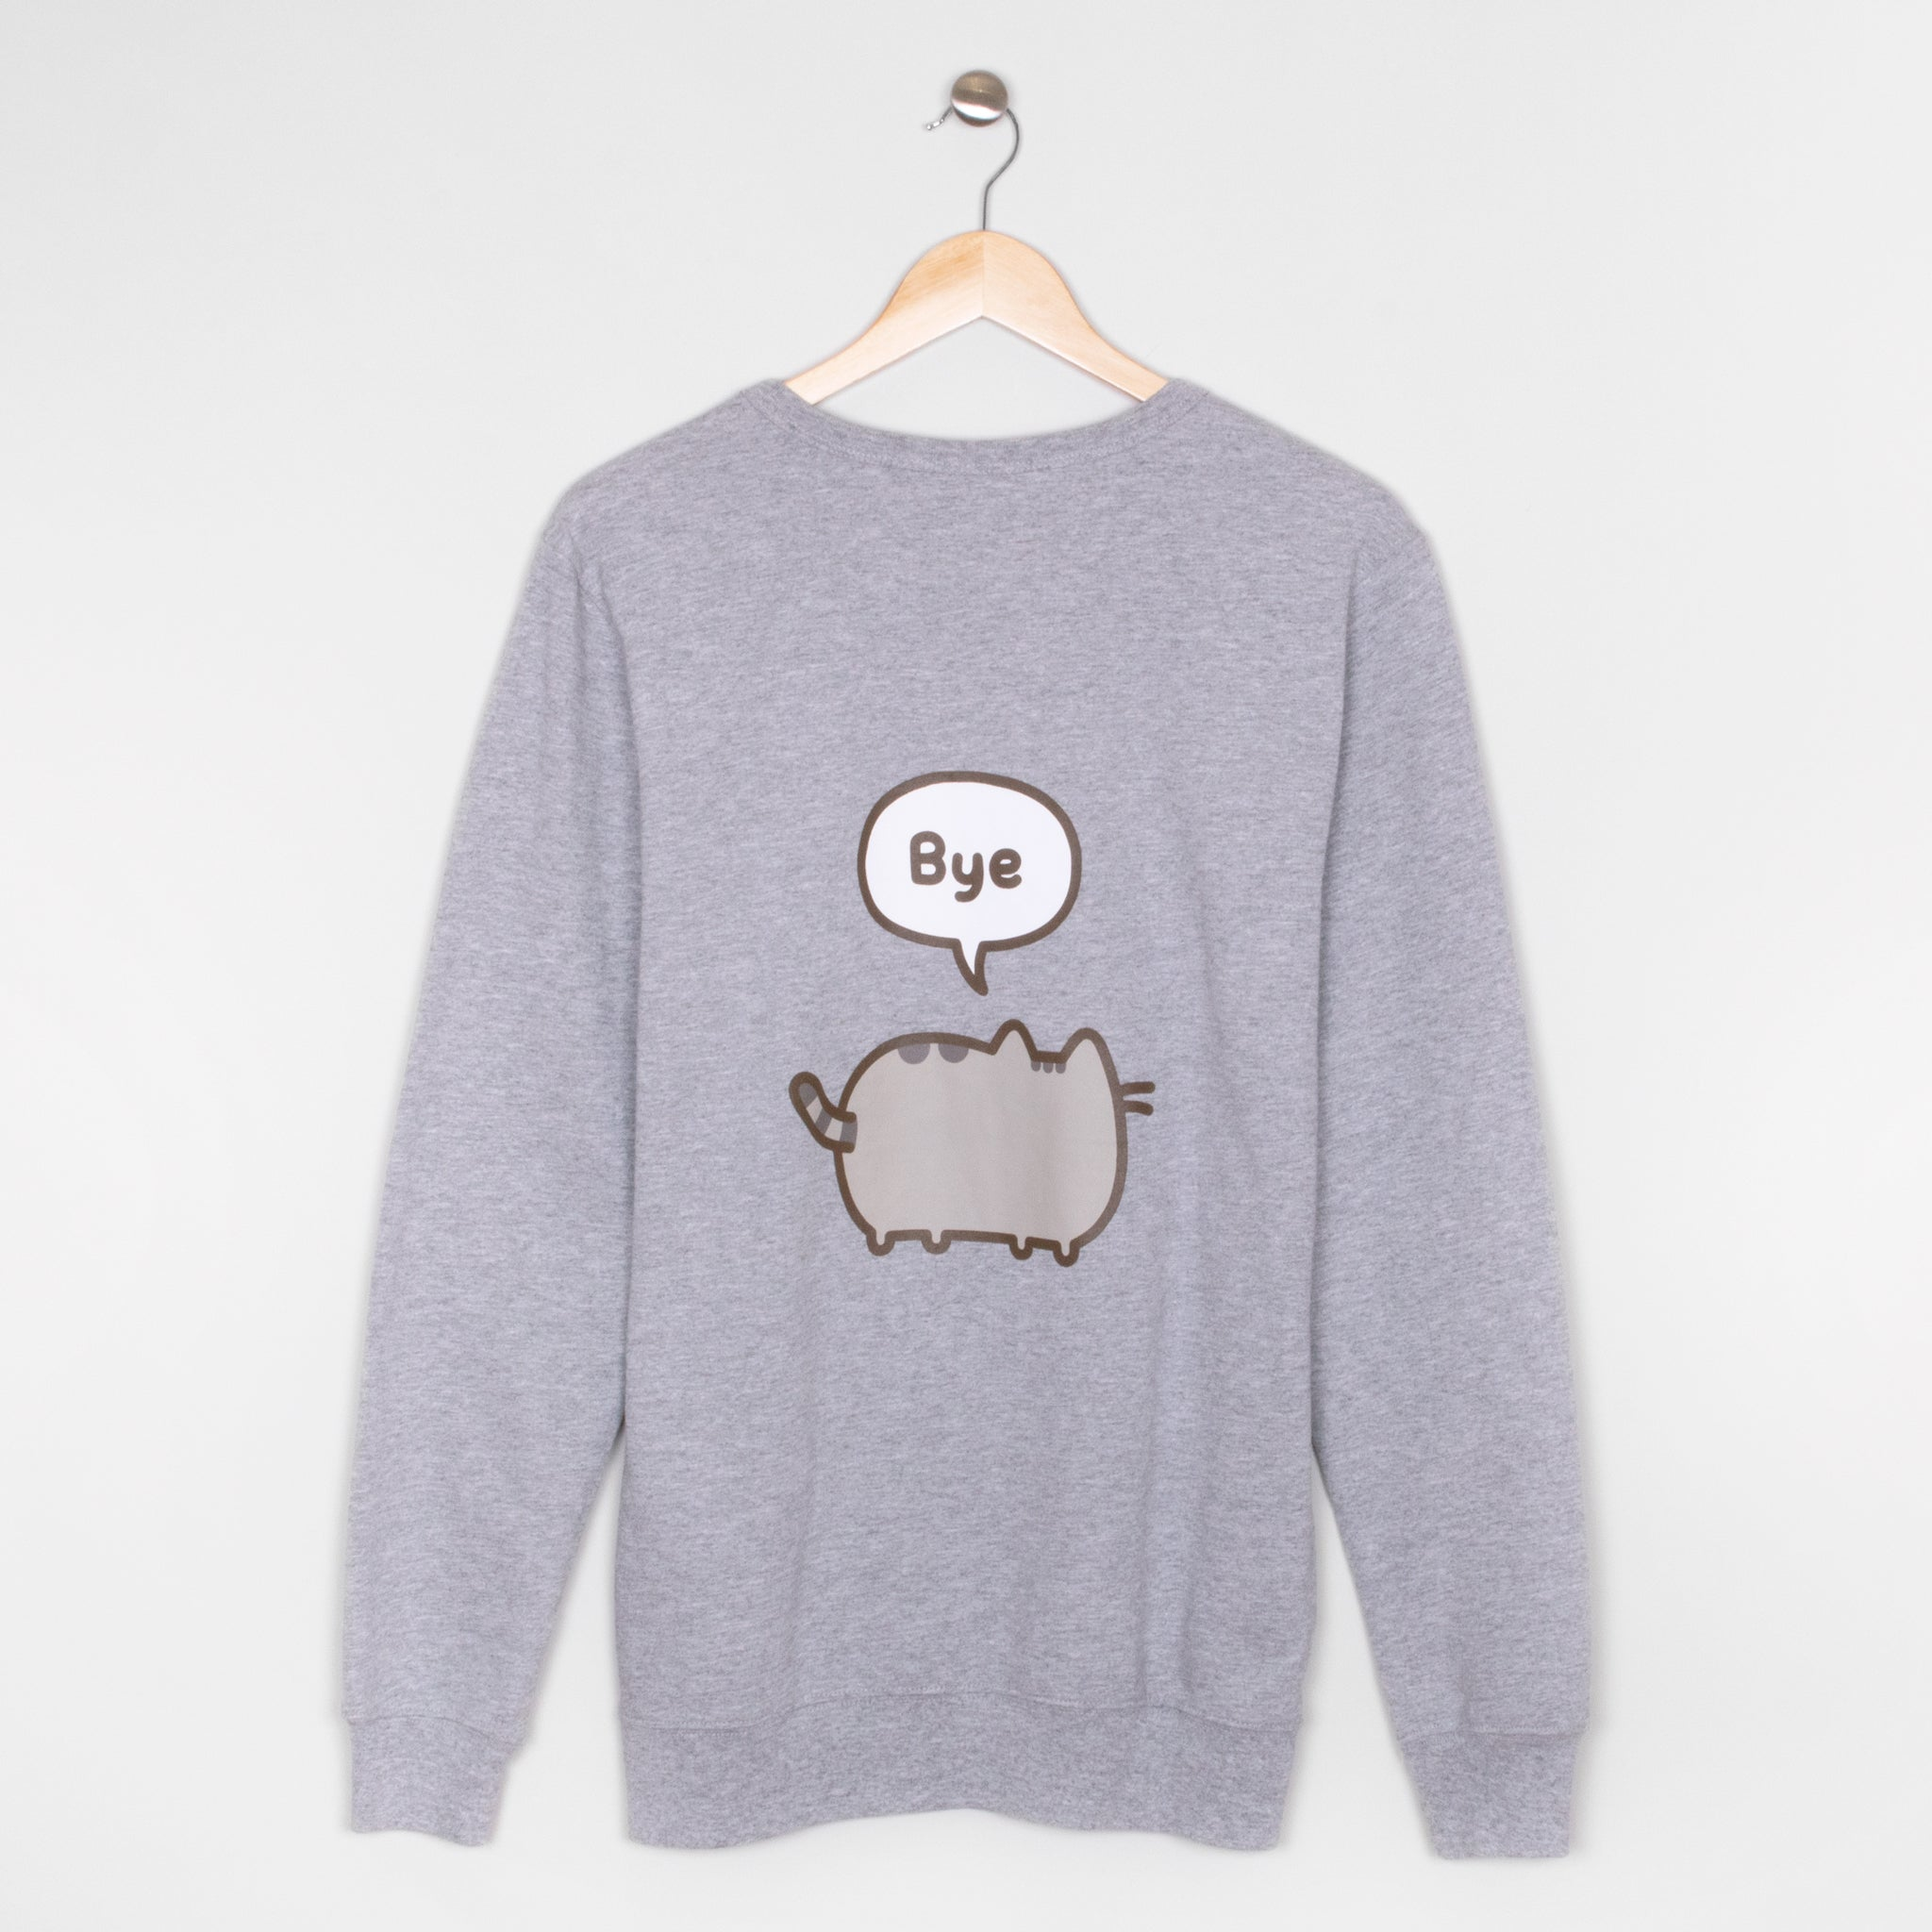 pusheen hi bye back apparel sweater longsleeve shirt cute cat culturefly